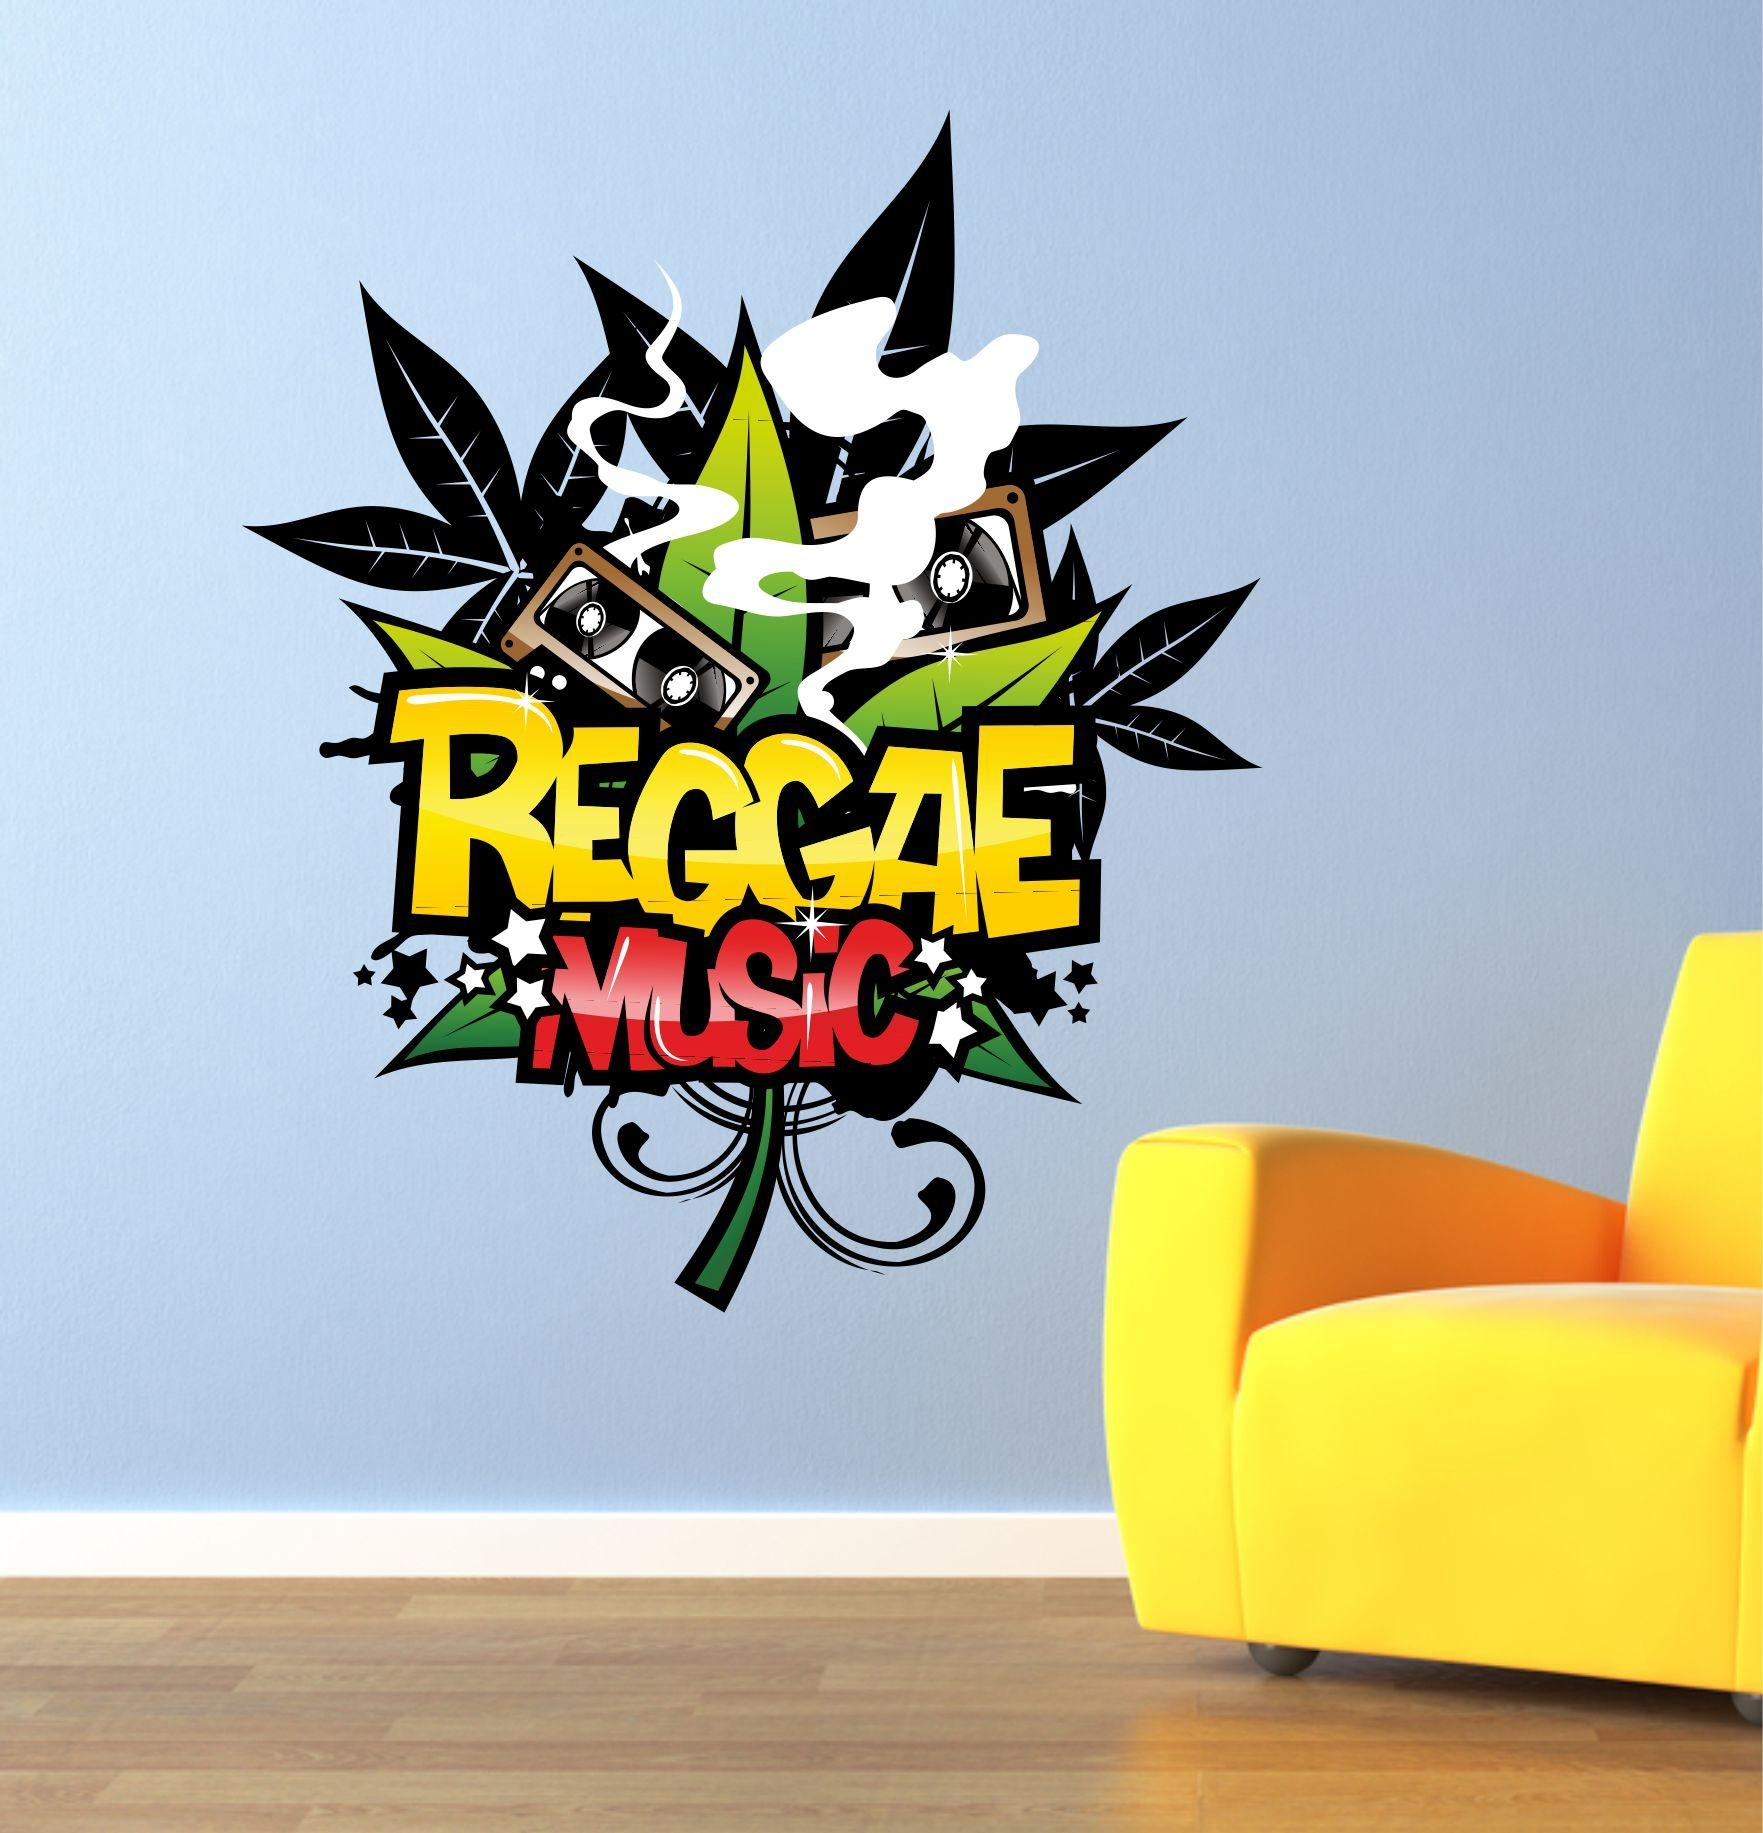 The Grafix Studio | Reggae Music Graffiti Wall Art Sticker For Graffiti Wall Art Stickers (Image 19 of 20)